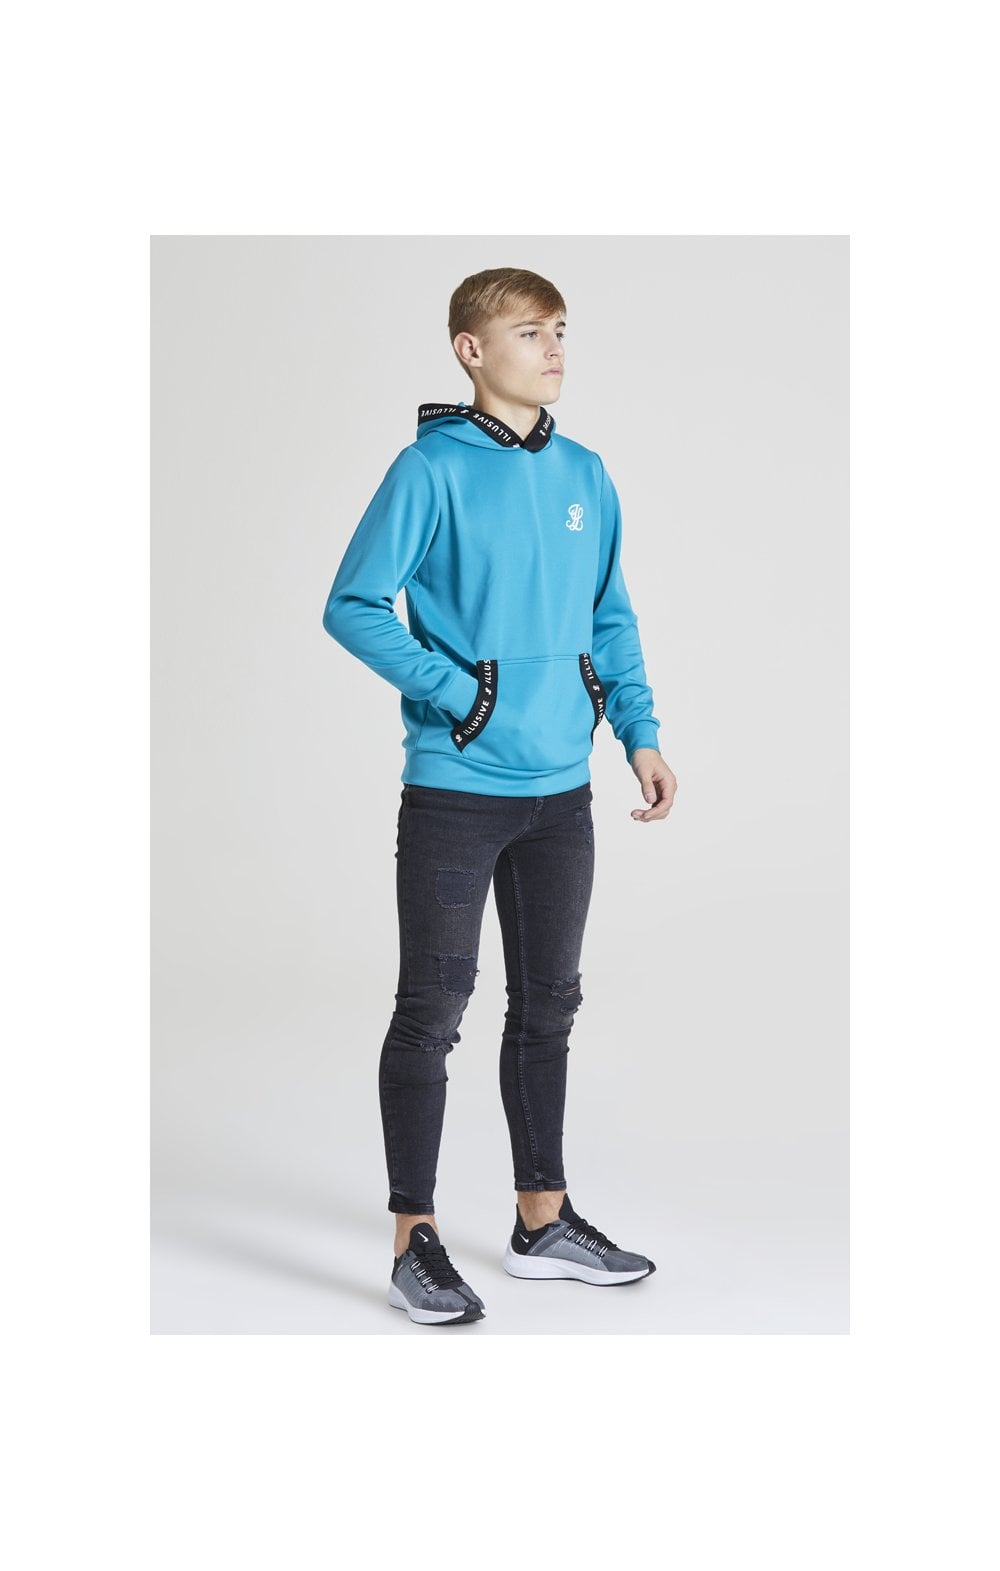 Illusive London Taped Overhead Hoodie - Teal Green (4)